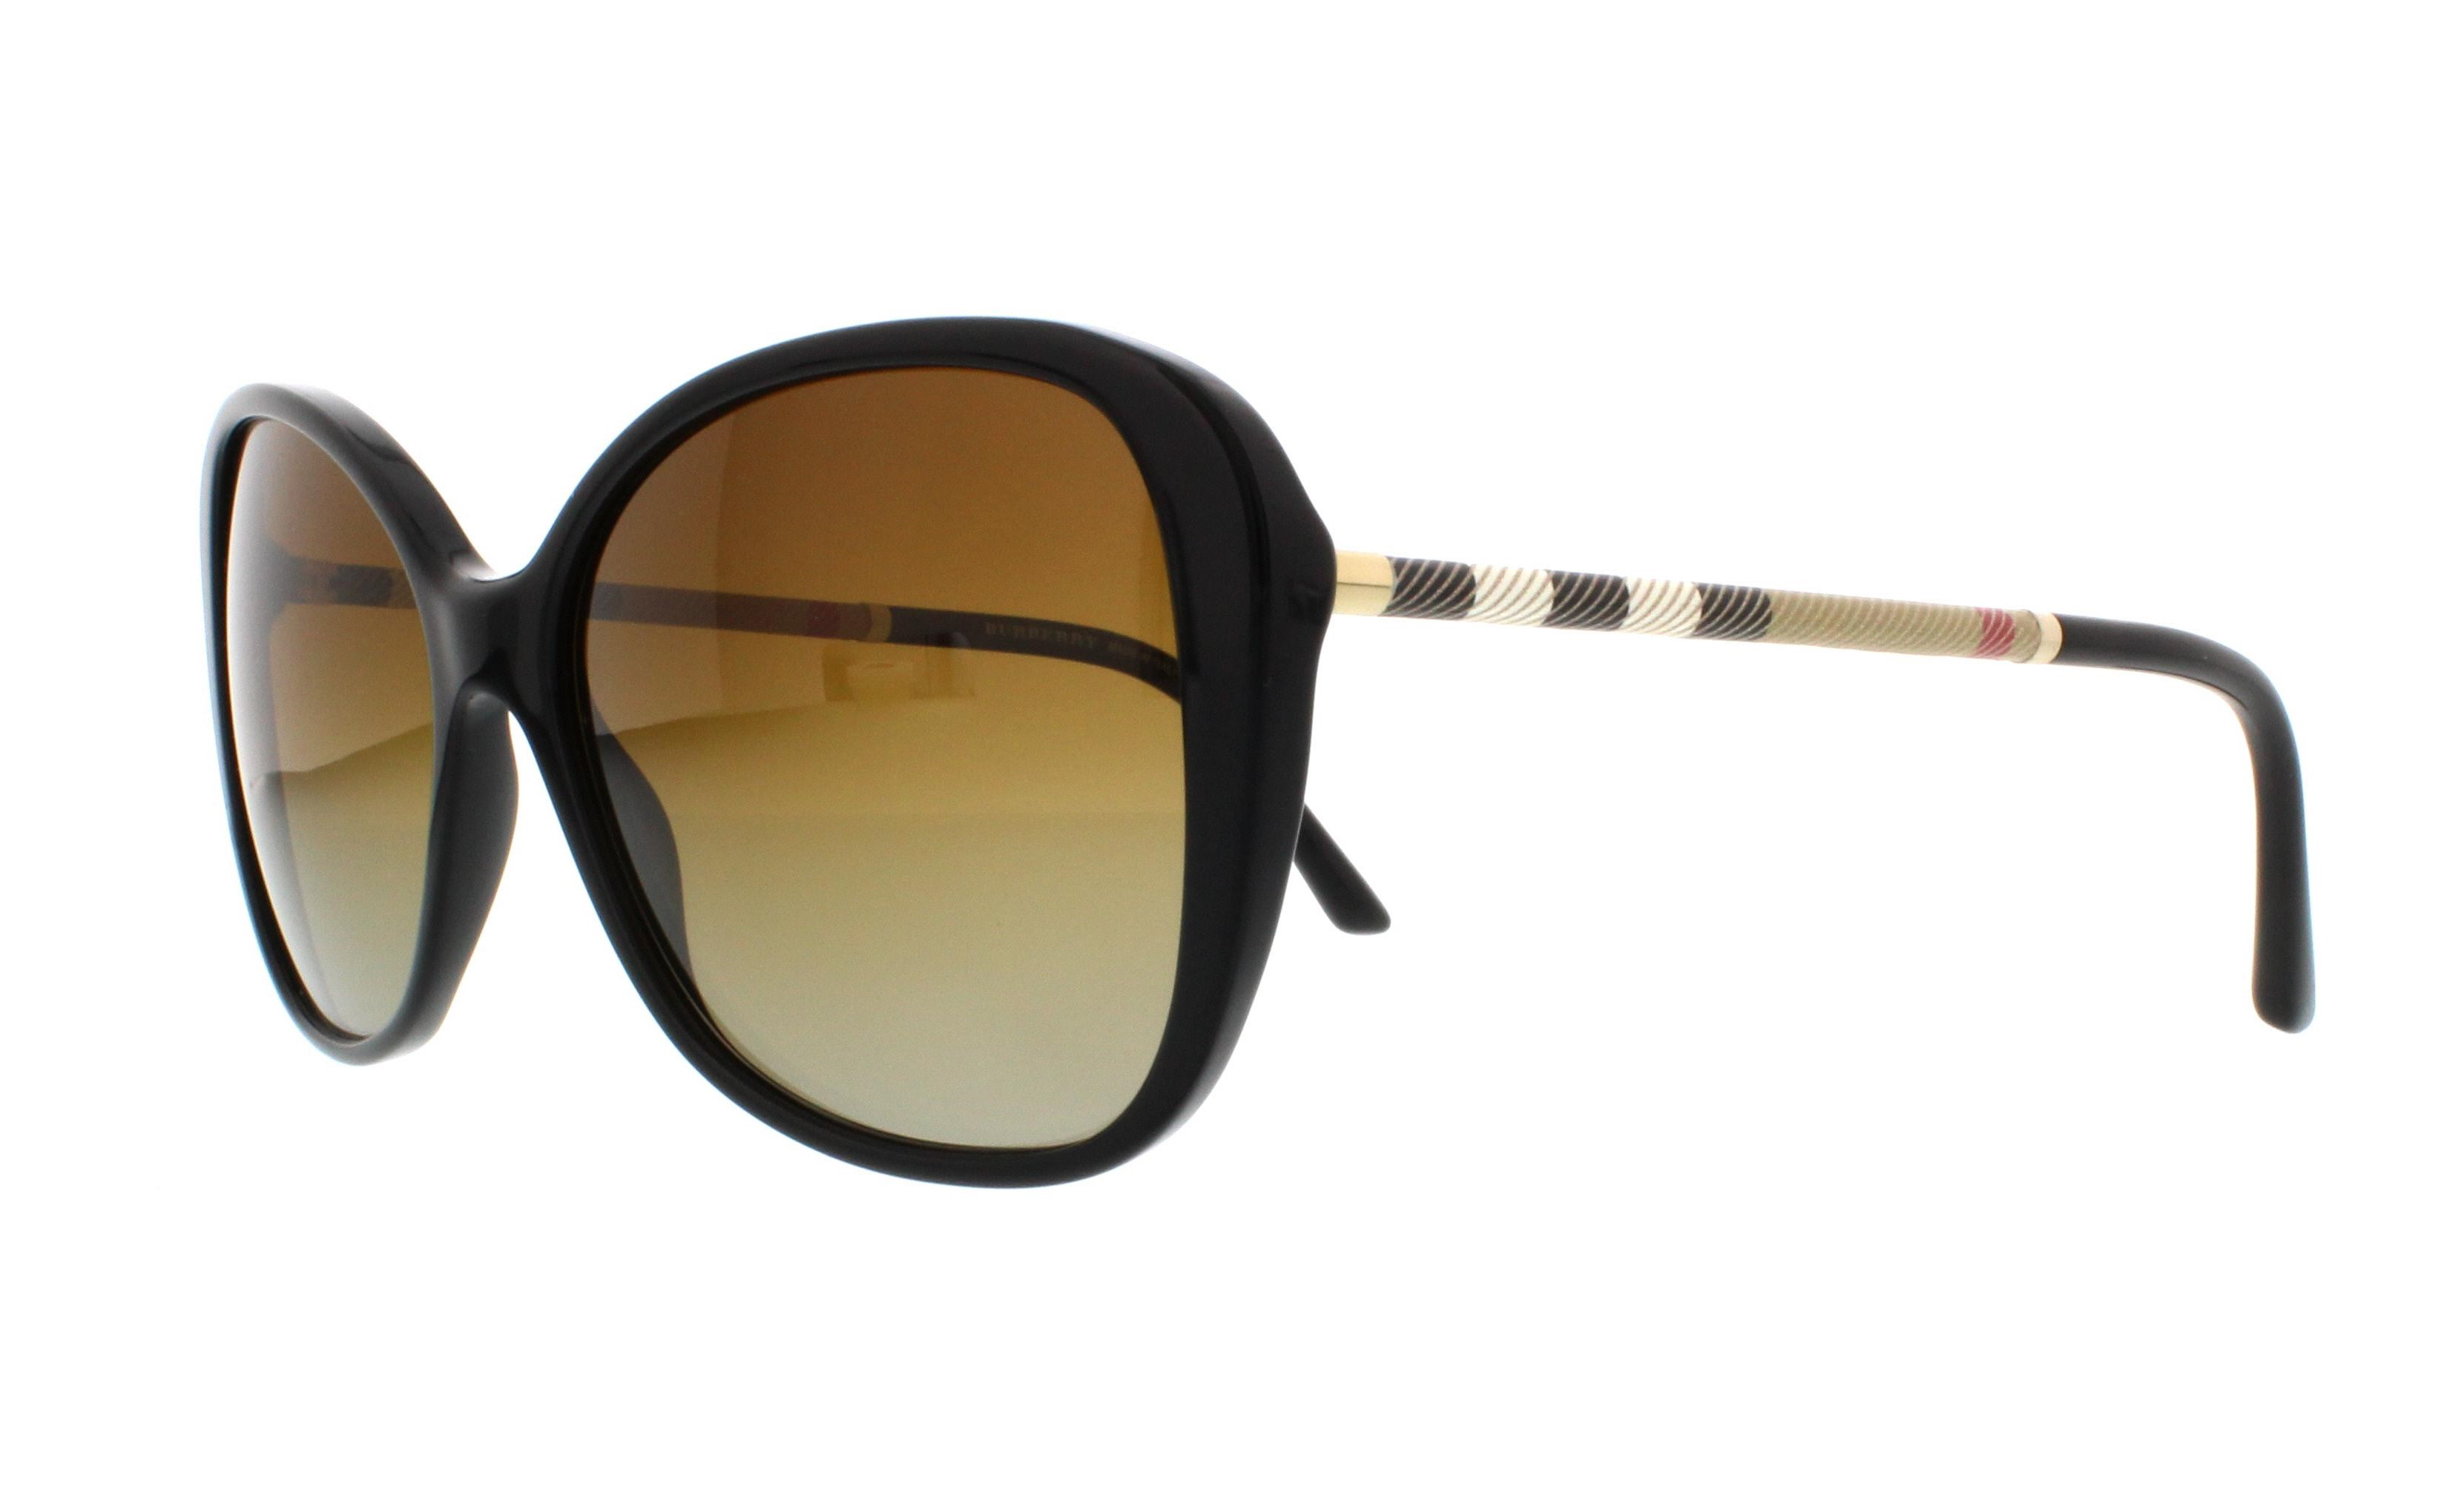 73d6bf827c81 Burberry Sunglasses Ebay